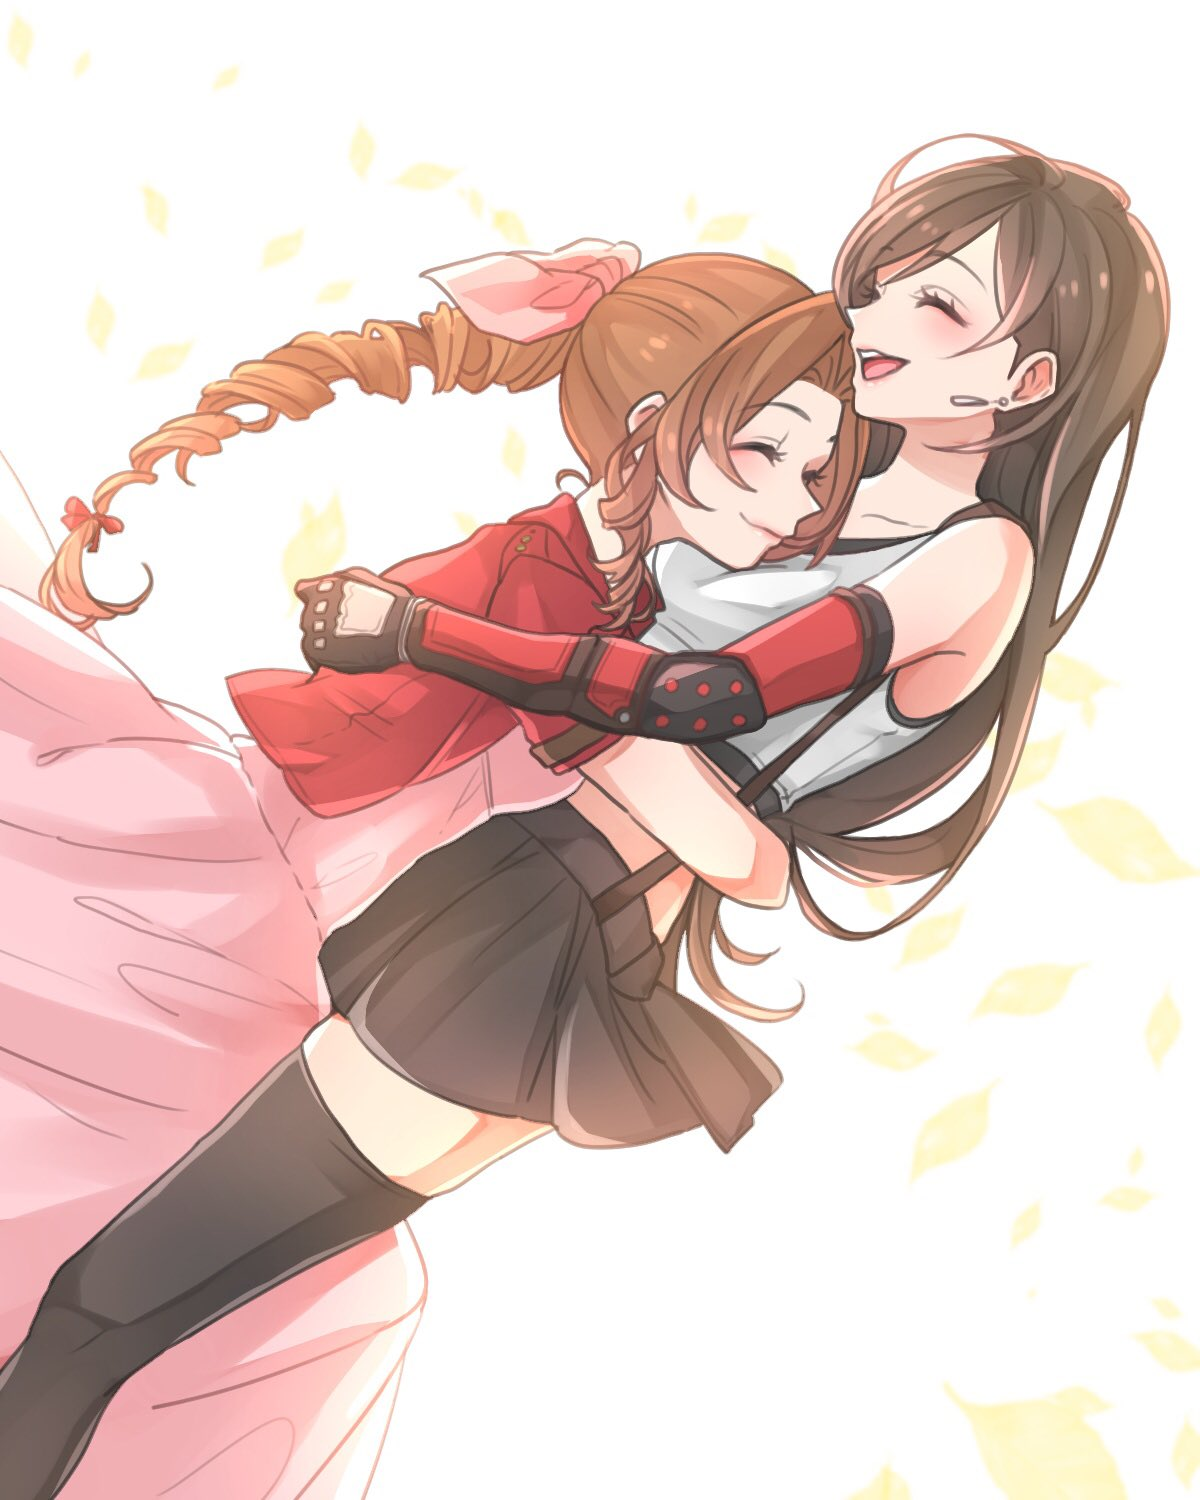 2girls :d aerith_gainsborough bare_shoulders black_hair black_legwear black_skirt brown_hair crop_top cropped_jacket dress earrings final_fantasy final_fantasy_vii final_fantasy_vii_remake hair_ribbon highres hug jacket jewelry long_hair miniskirt multiple_girls open_clothes open_jacket open_mouth pink_dress pink_ribbon pleated_skirt red_jacket ribbon shirt short_sleeves skirt smile suspender_skirt suspenders tank_top teeth thigh-highs tifa_lockhart toufu_(toufu_53) white_shirt zettai_ryouiki